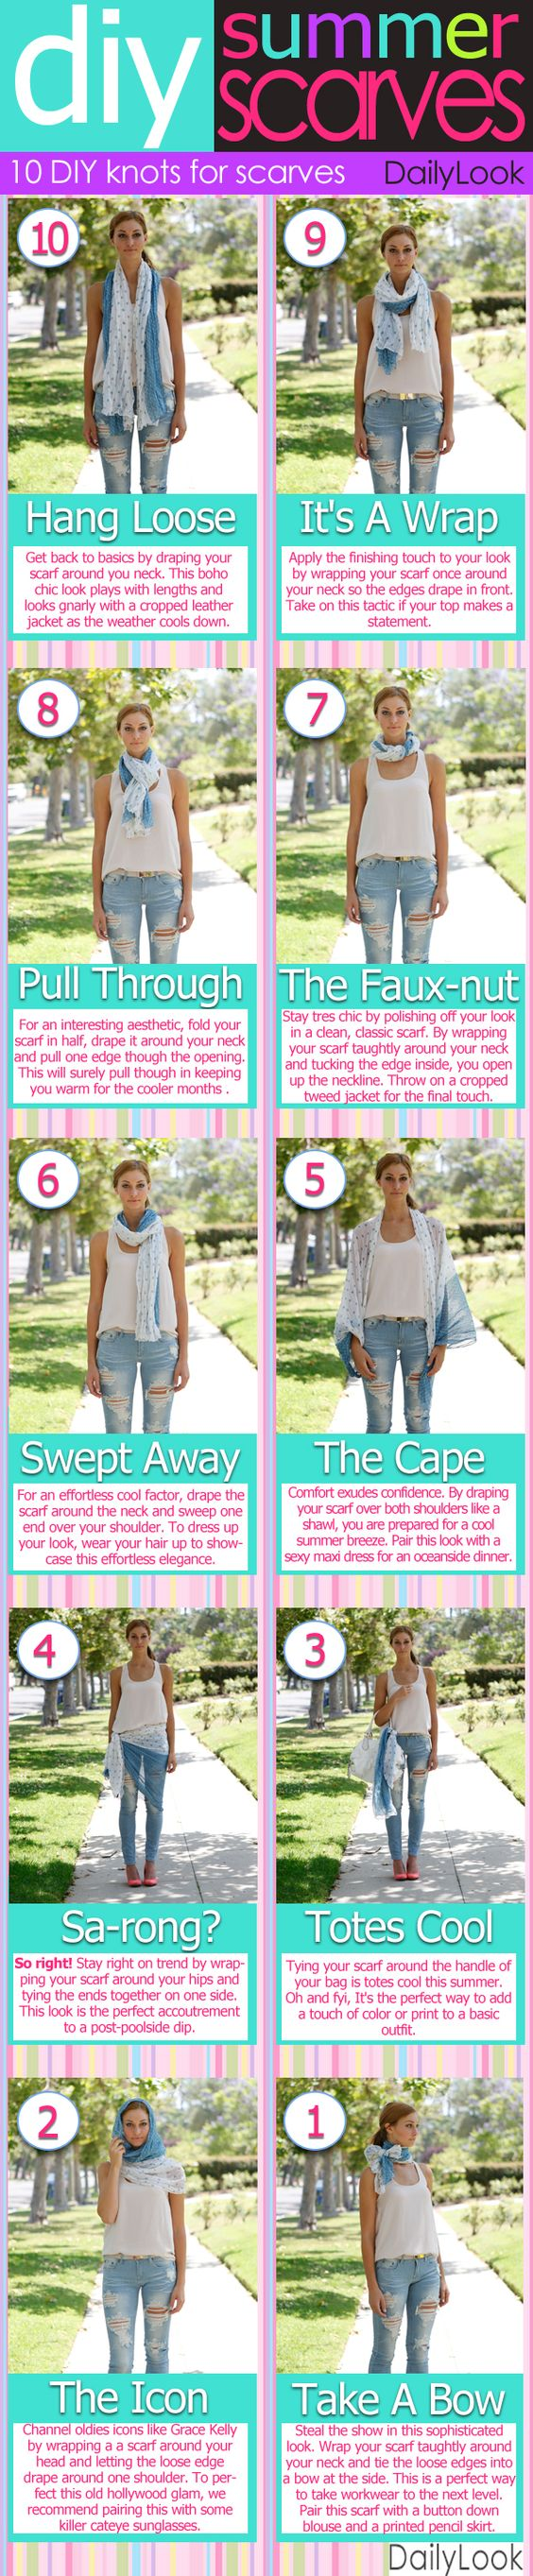 The 10 ways to wear a summer scarf on DailyLook